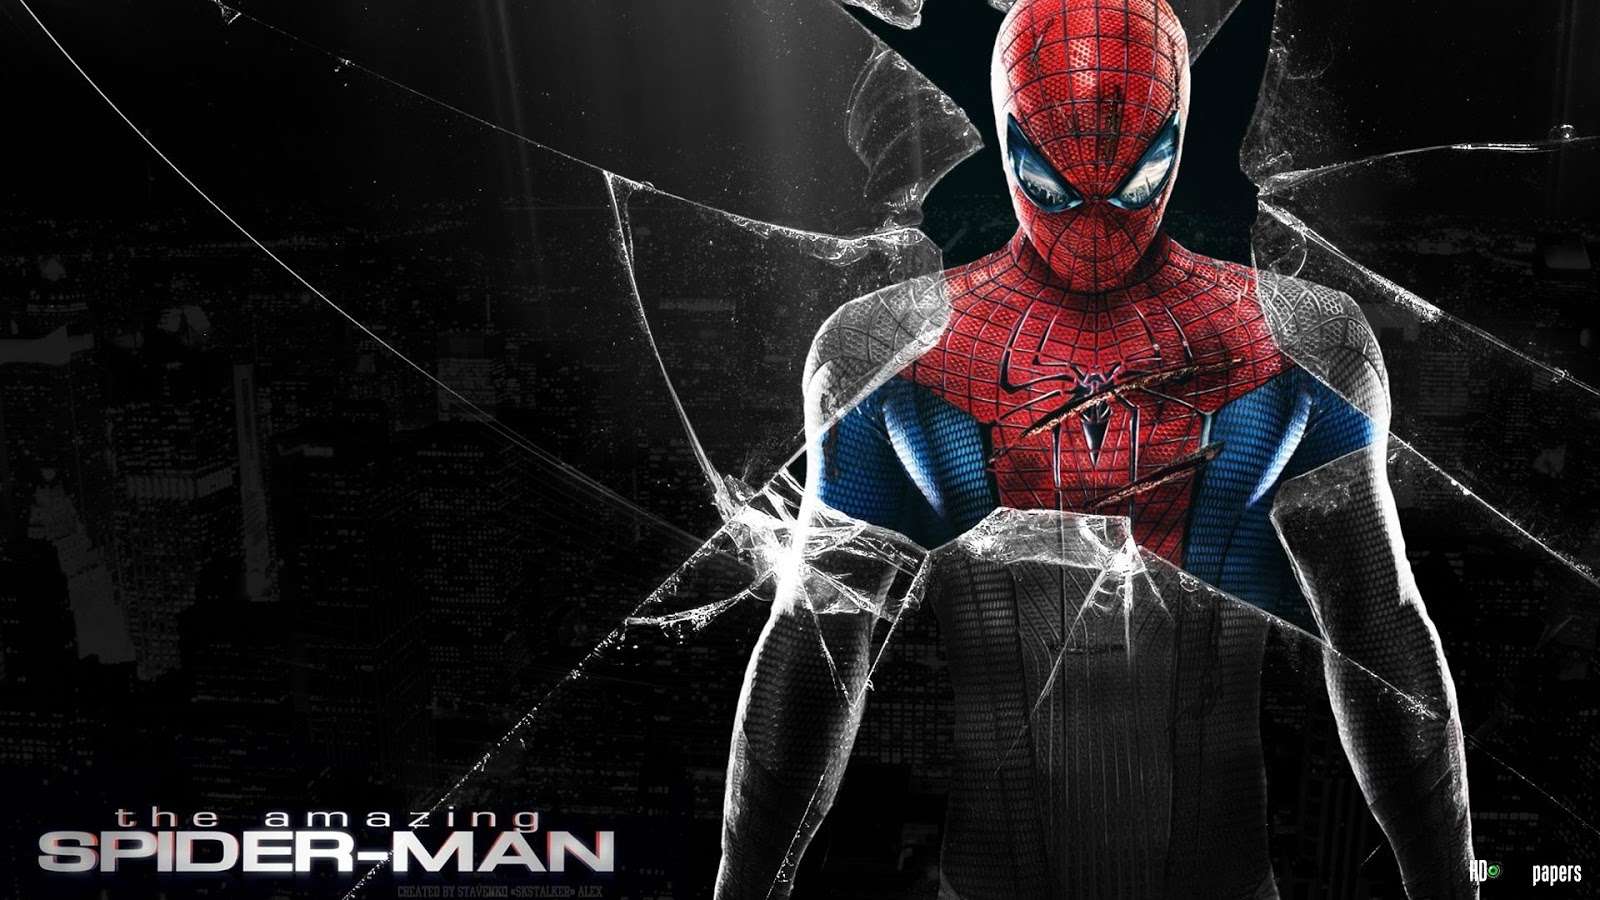 The Amazing Spiderman Wallpapers for Desktop